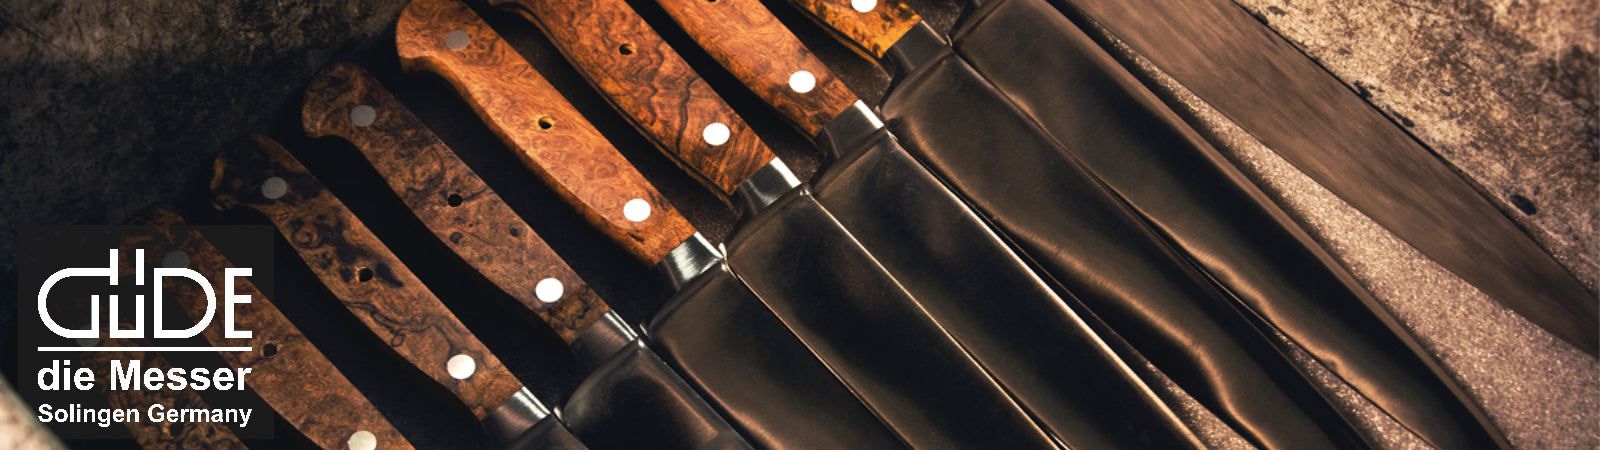 Gude Handmade German Knives, available at Sportique.com